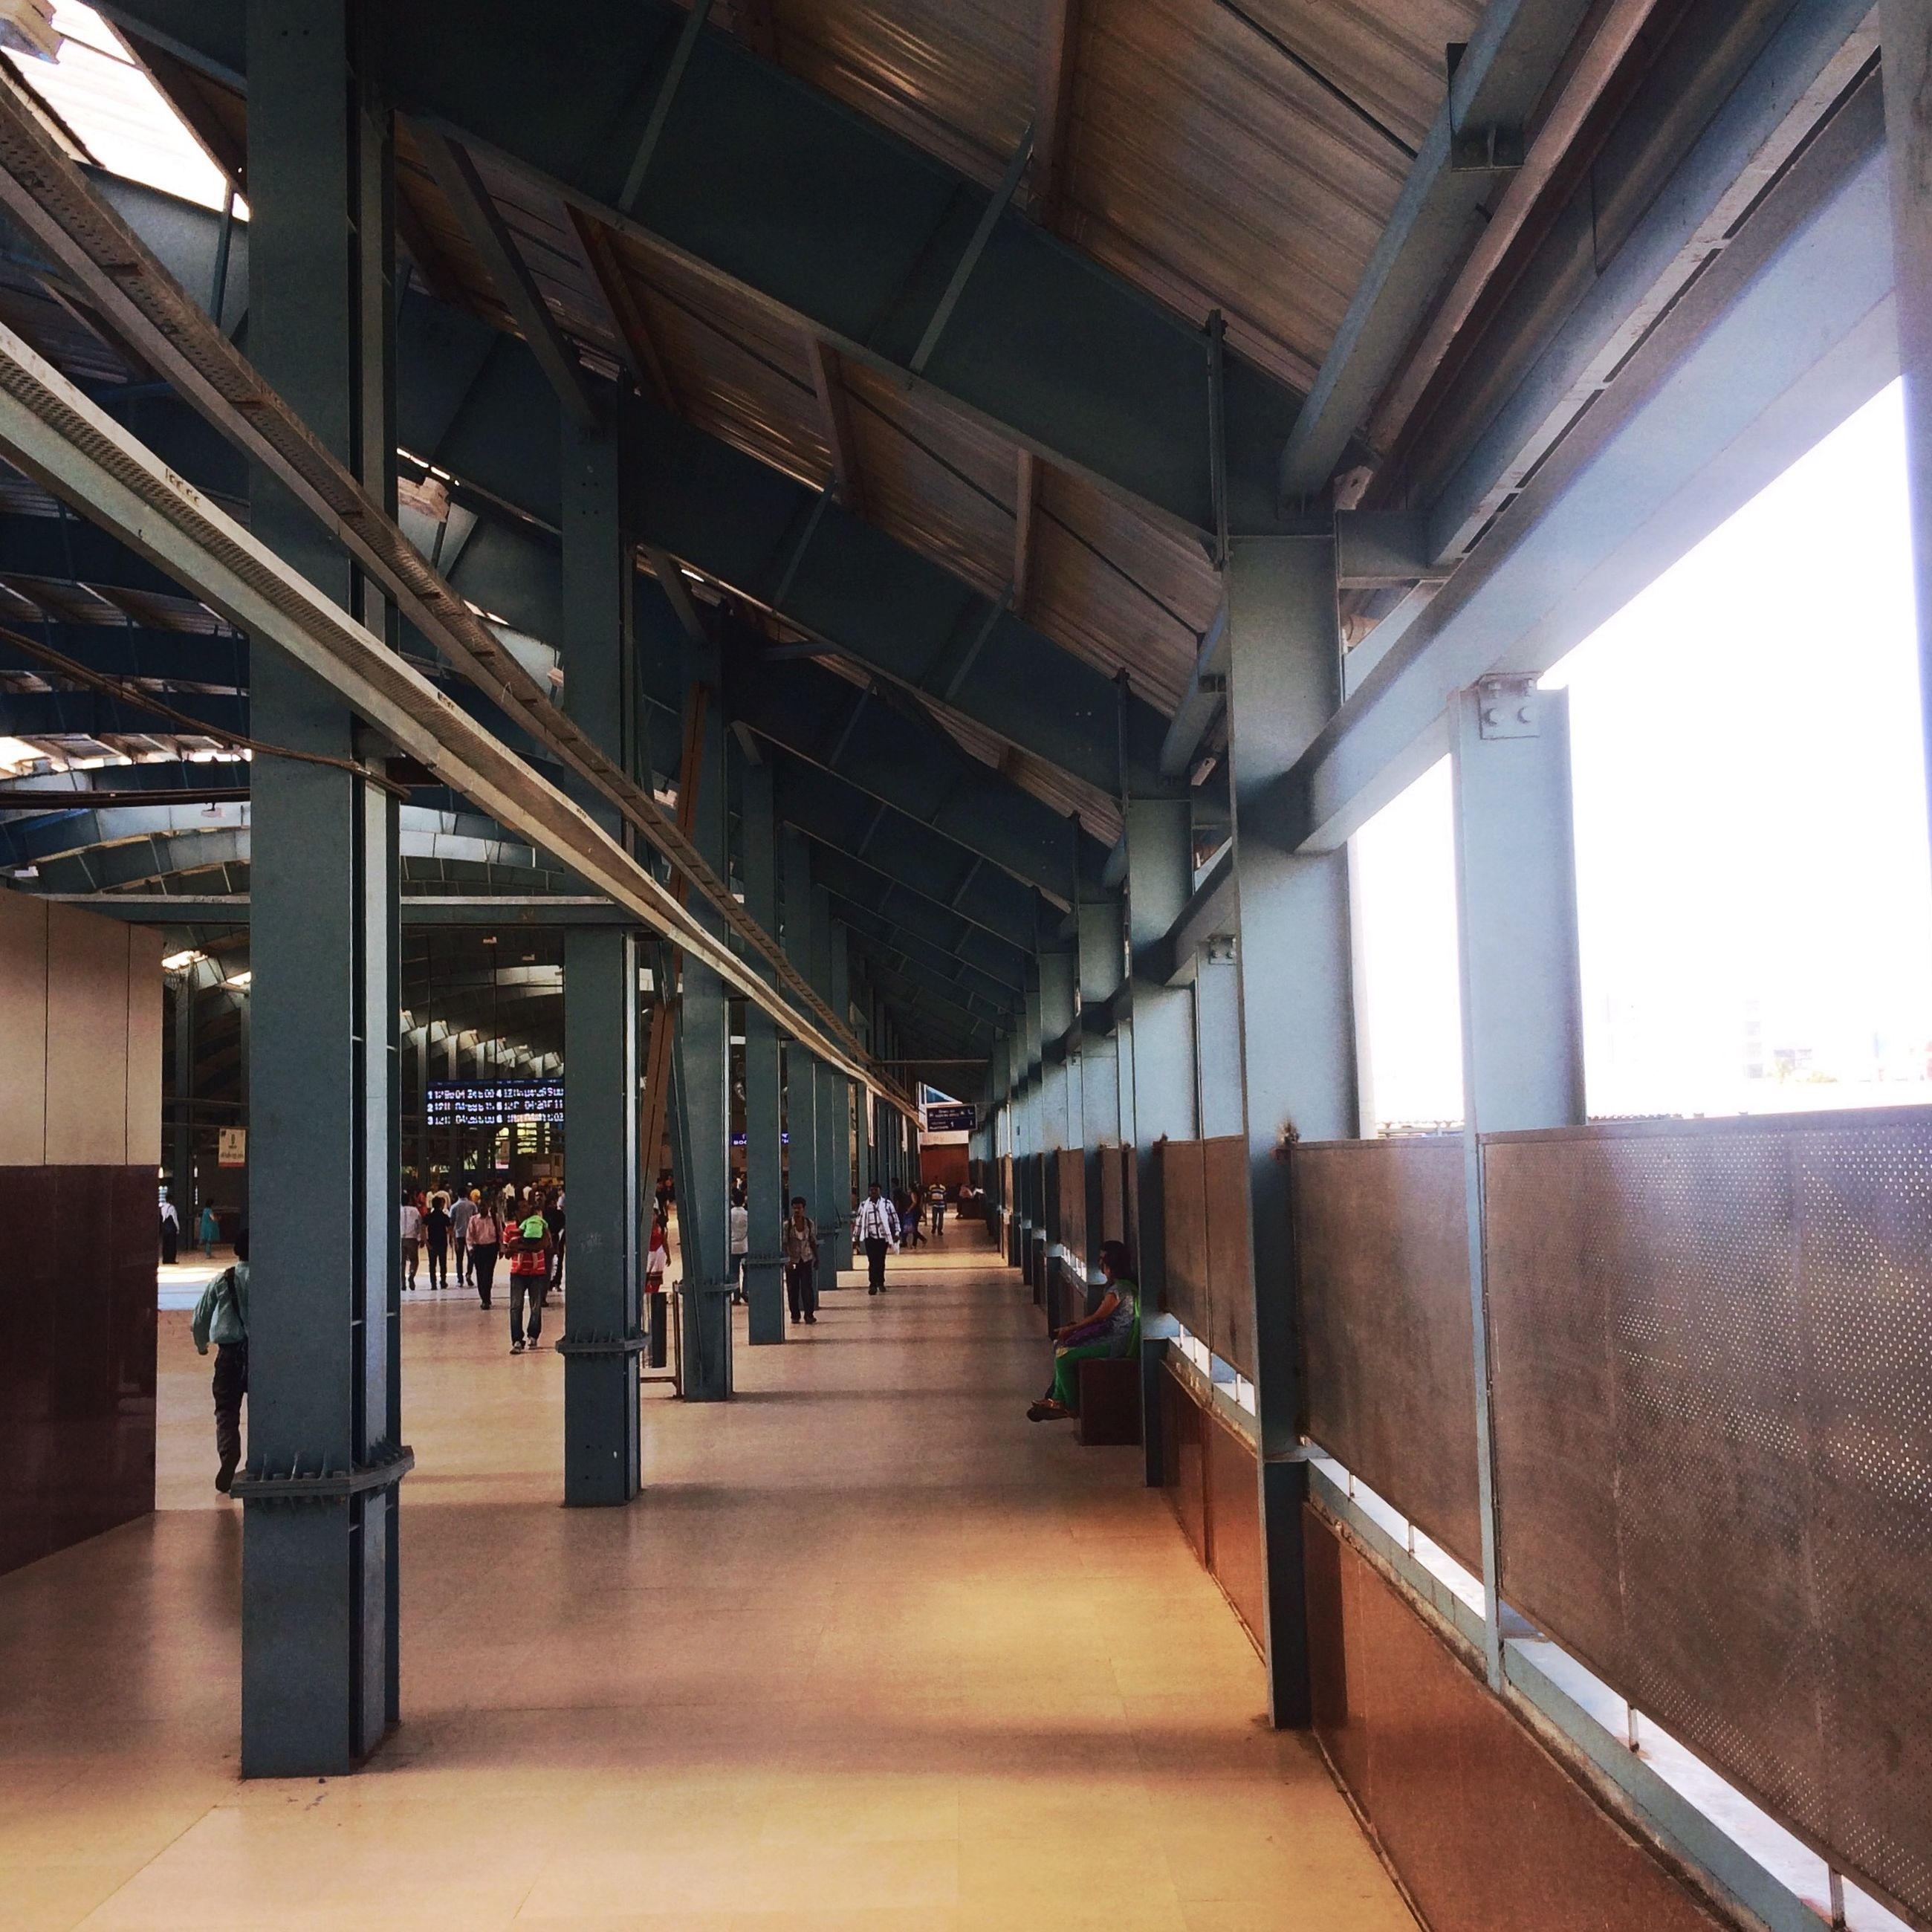 indoors, architecture, empty, built structure, corridor, in a row, the way forward, ceiling, absence, diminishing perspective, architectural column, flooring, chair, narrow, column, sunlight, day, repetition, no people, vanishing point